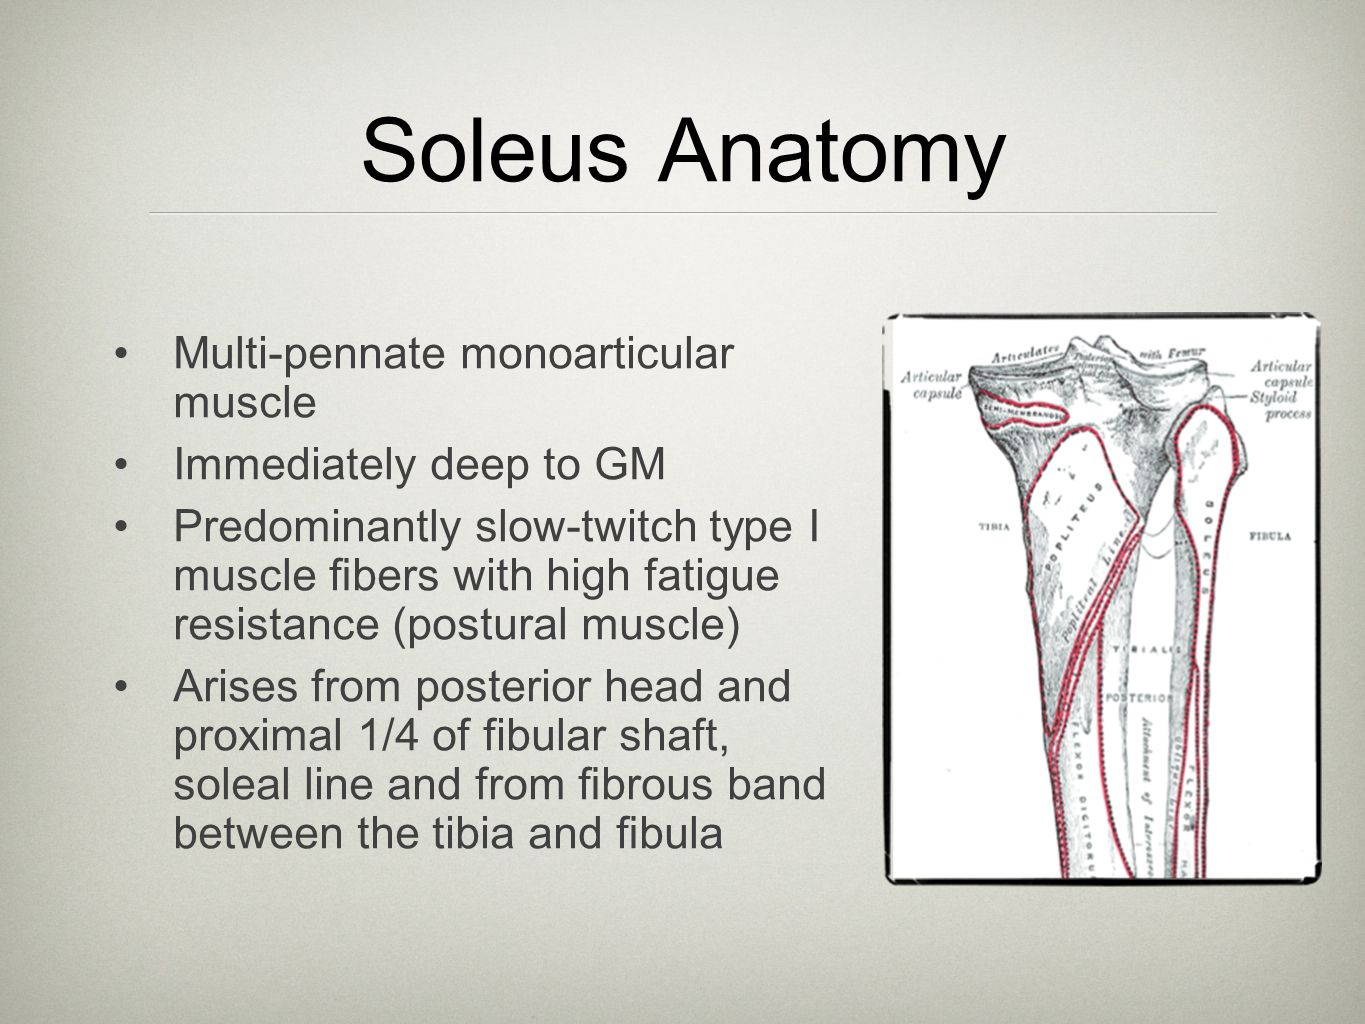 Plantaris Variable size Absent in 6% to 8% Origin from the popliteal surface of the femur above the lateral femoral condyle Muscle belly 5 to 10 cm in length, with a long tendon that extends distally between the gastrocnemius and soleus muscles Inserts: medial border of the Achilles tendon, calcaneus or flexor retinaculum Tendon may rupture Tendon may be used as a tendon graft in Achilles reconstruction